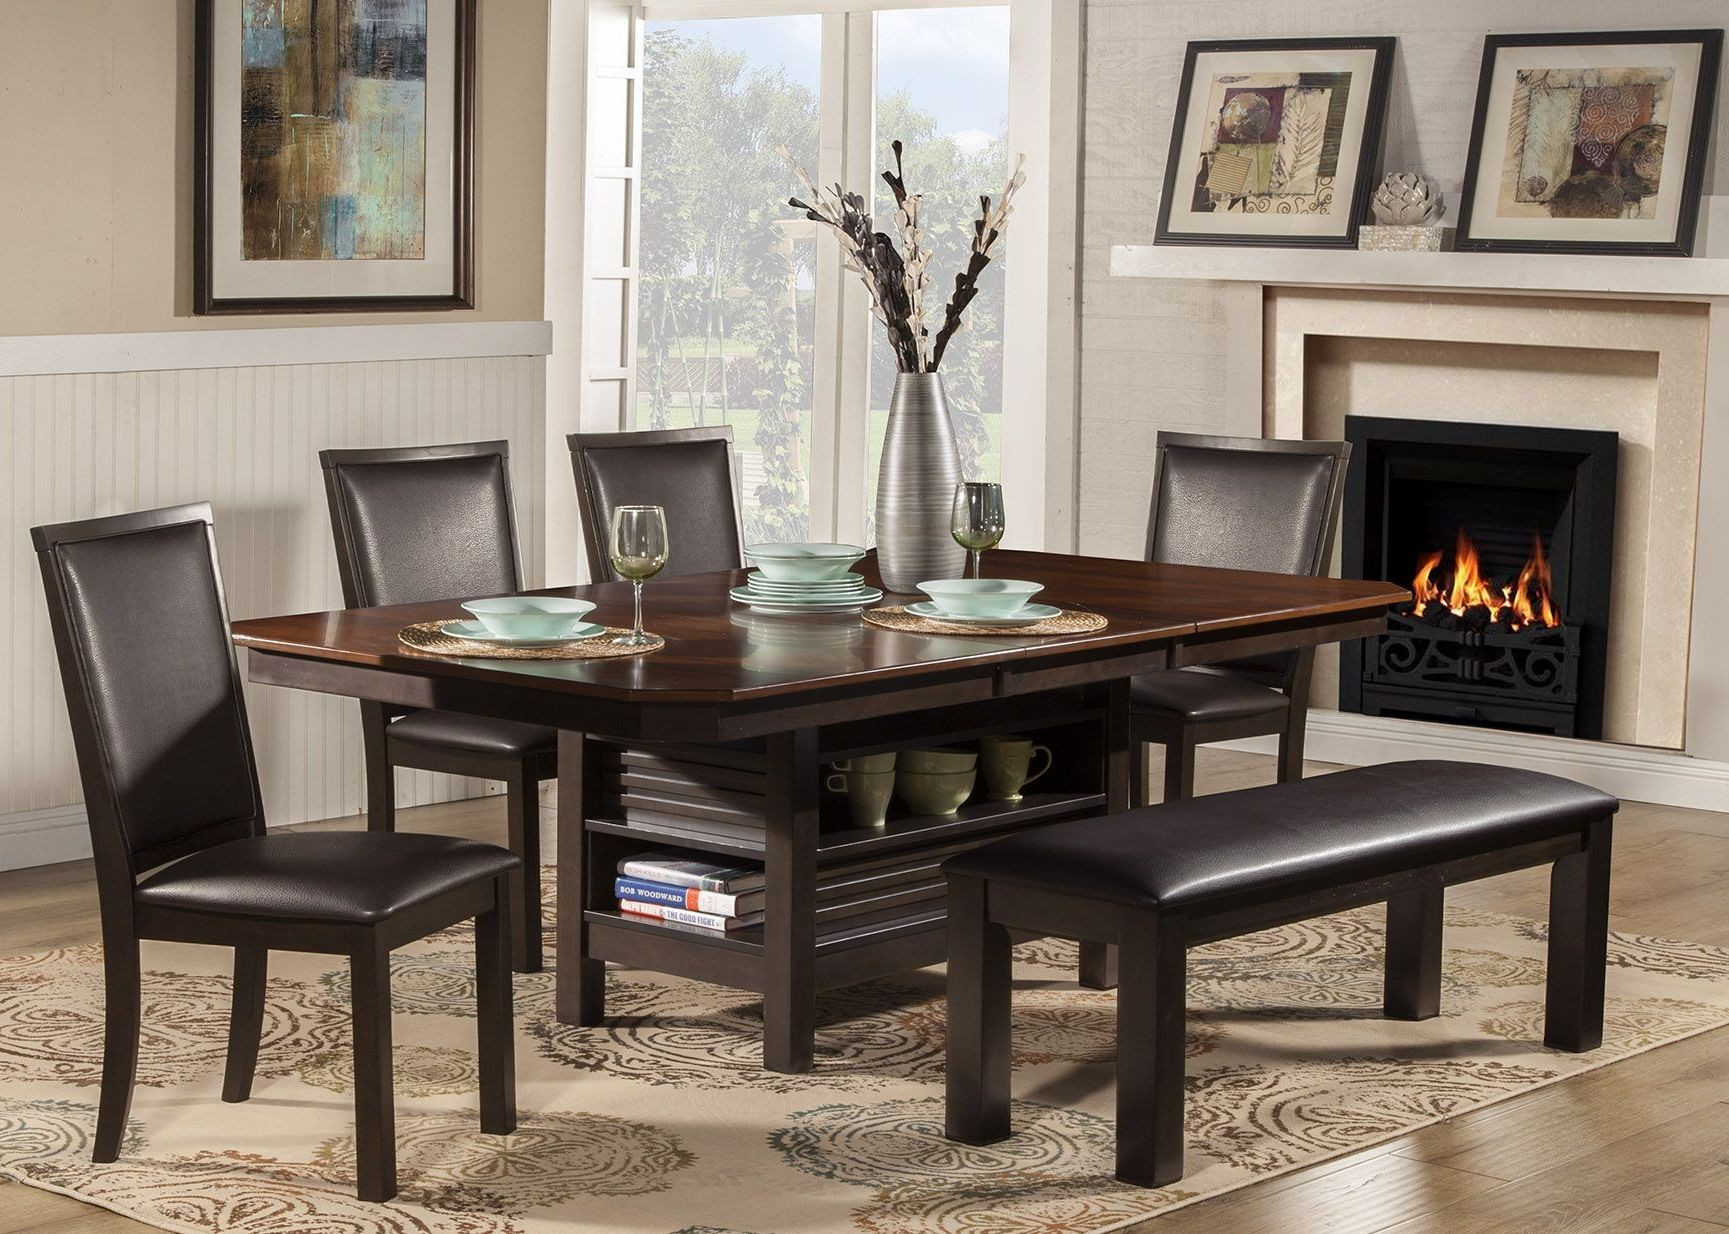 Davenport Espresso Extendable Dining Room Set 1306840 Alpine